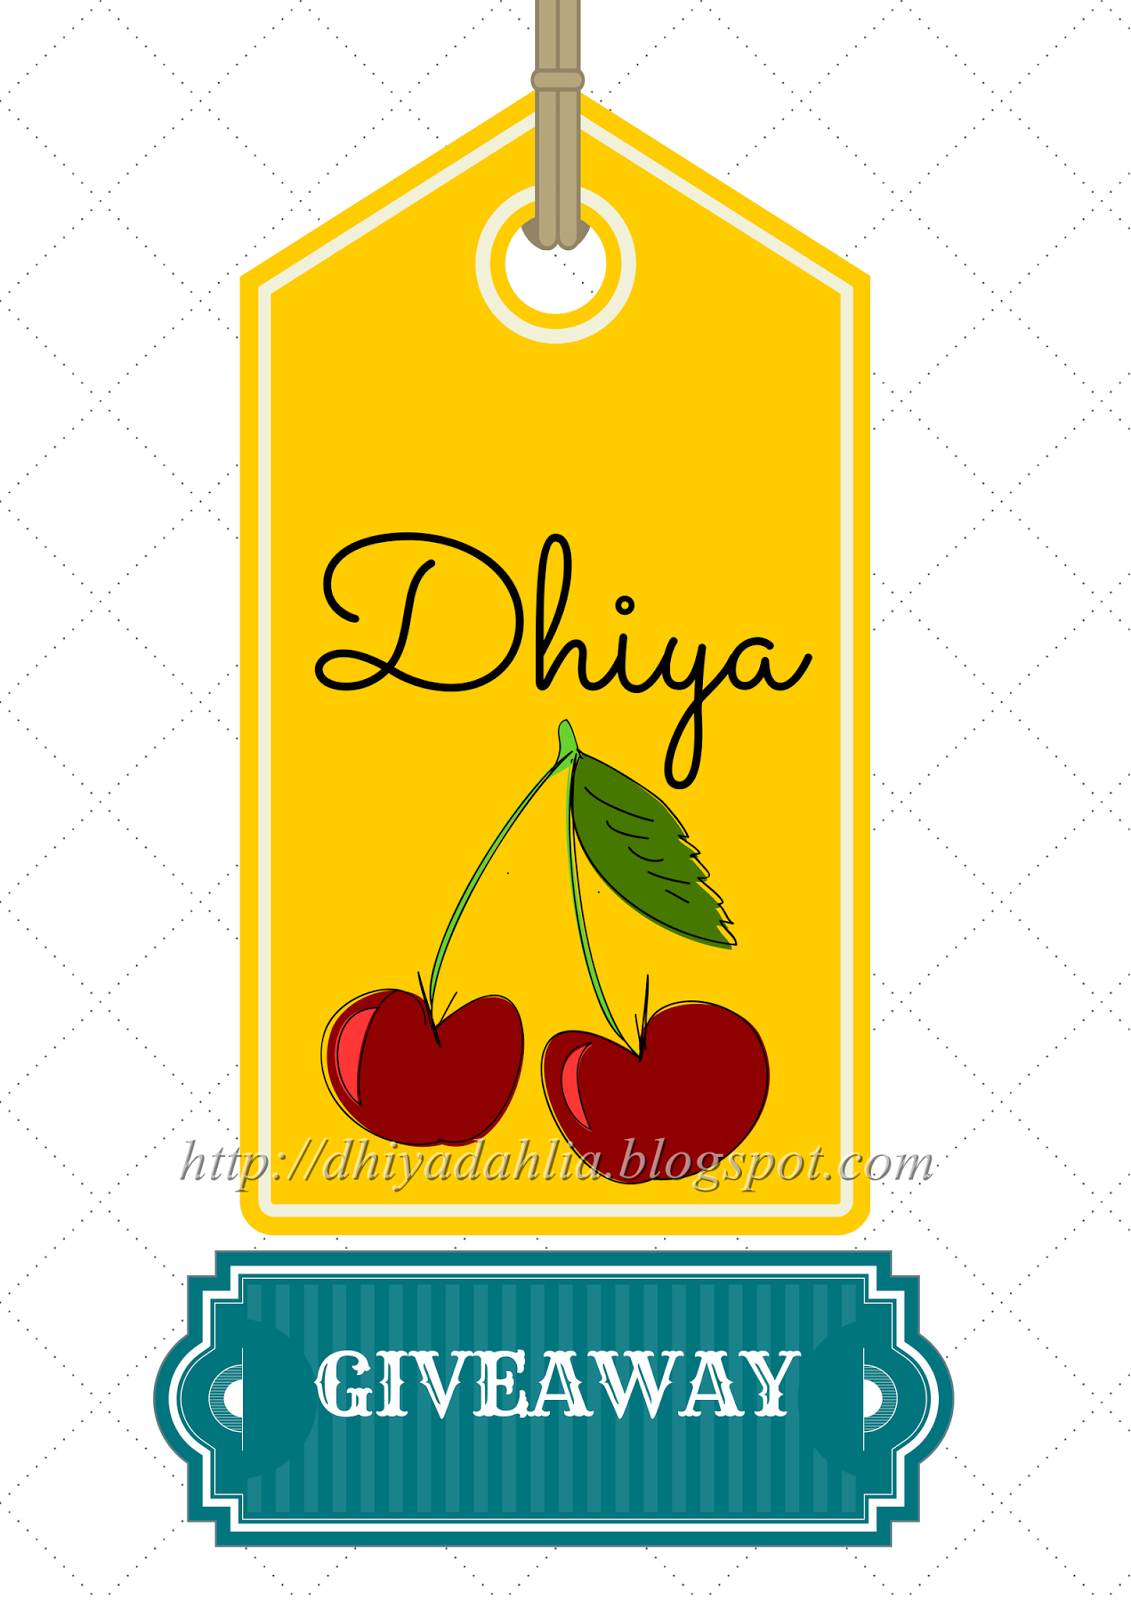 http://dhiyadahlia.blogspot.com/2014/08/dhiyas-first-giveaway.html